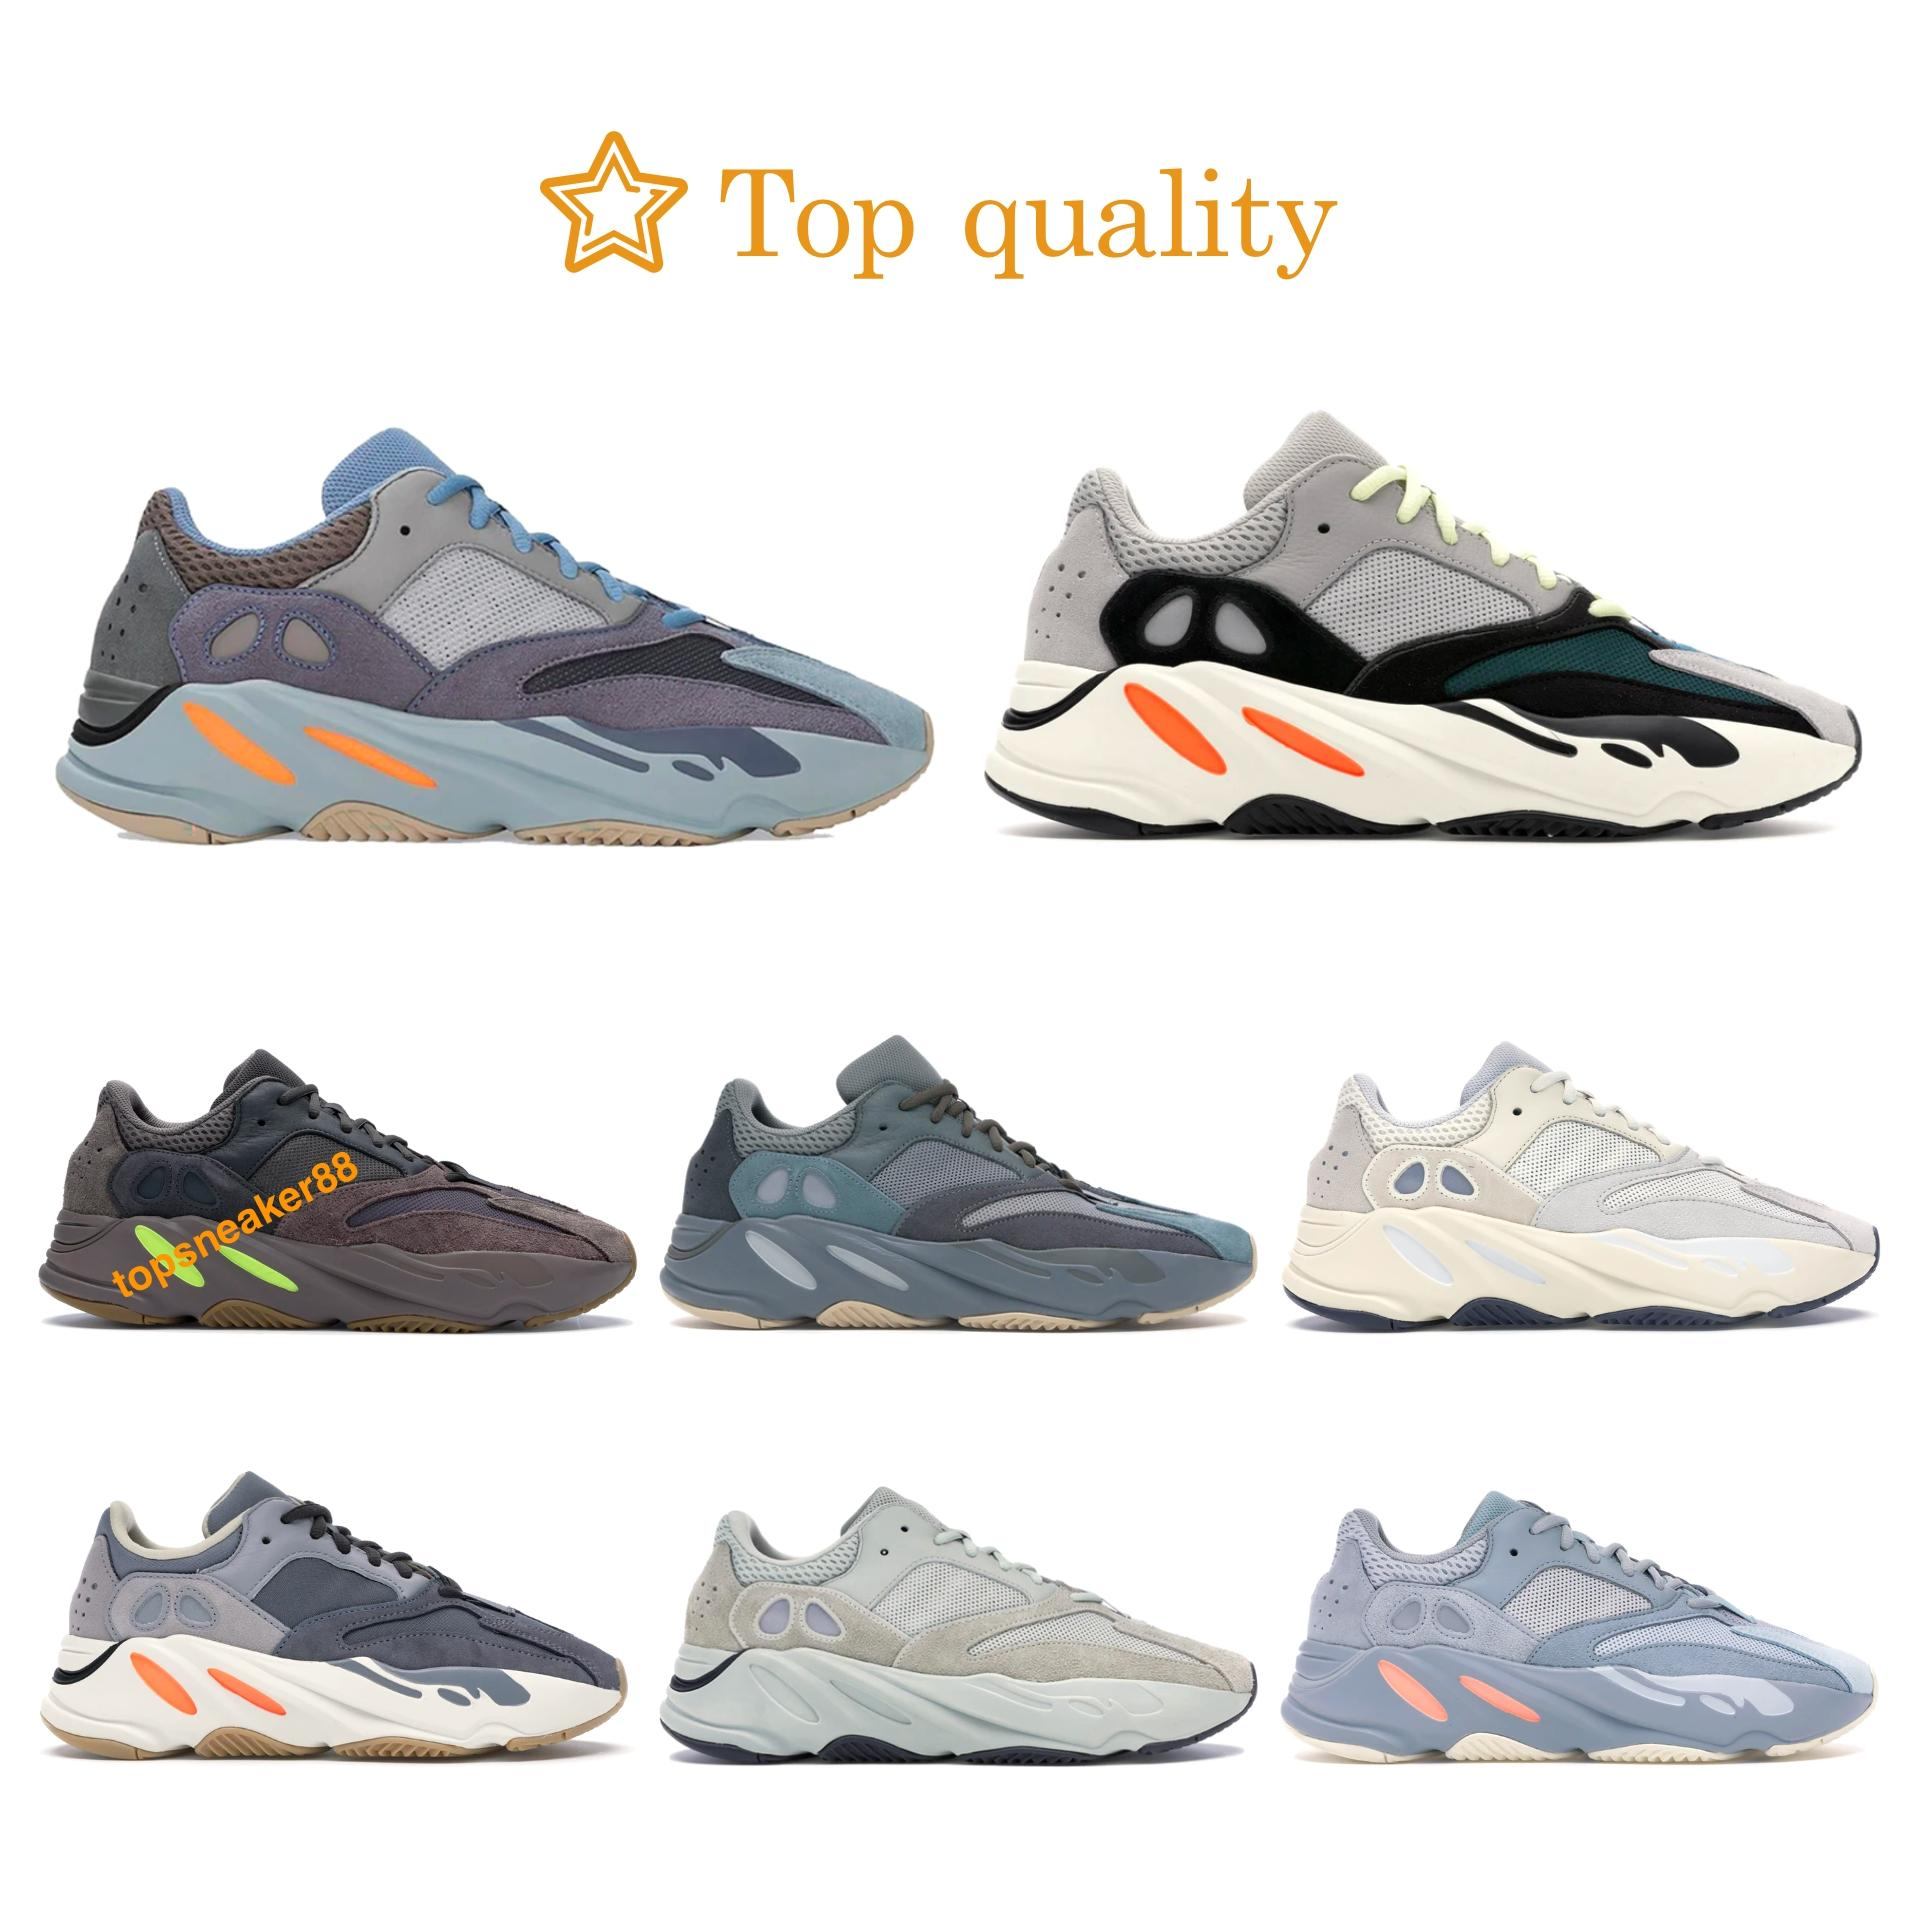 Boost 700 Wave Runner Solid Grey Kanye West YZY700 Running Shoes carbono Imán azul analógico inercia Wave Runner gris sólido de color de malva